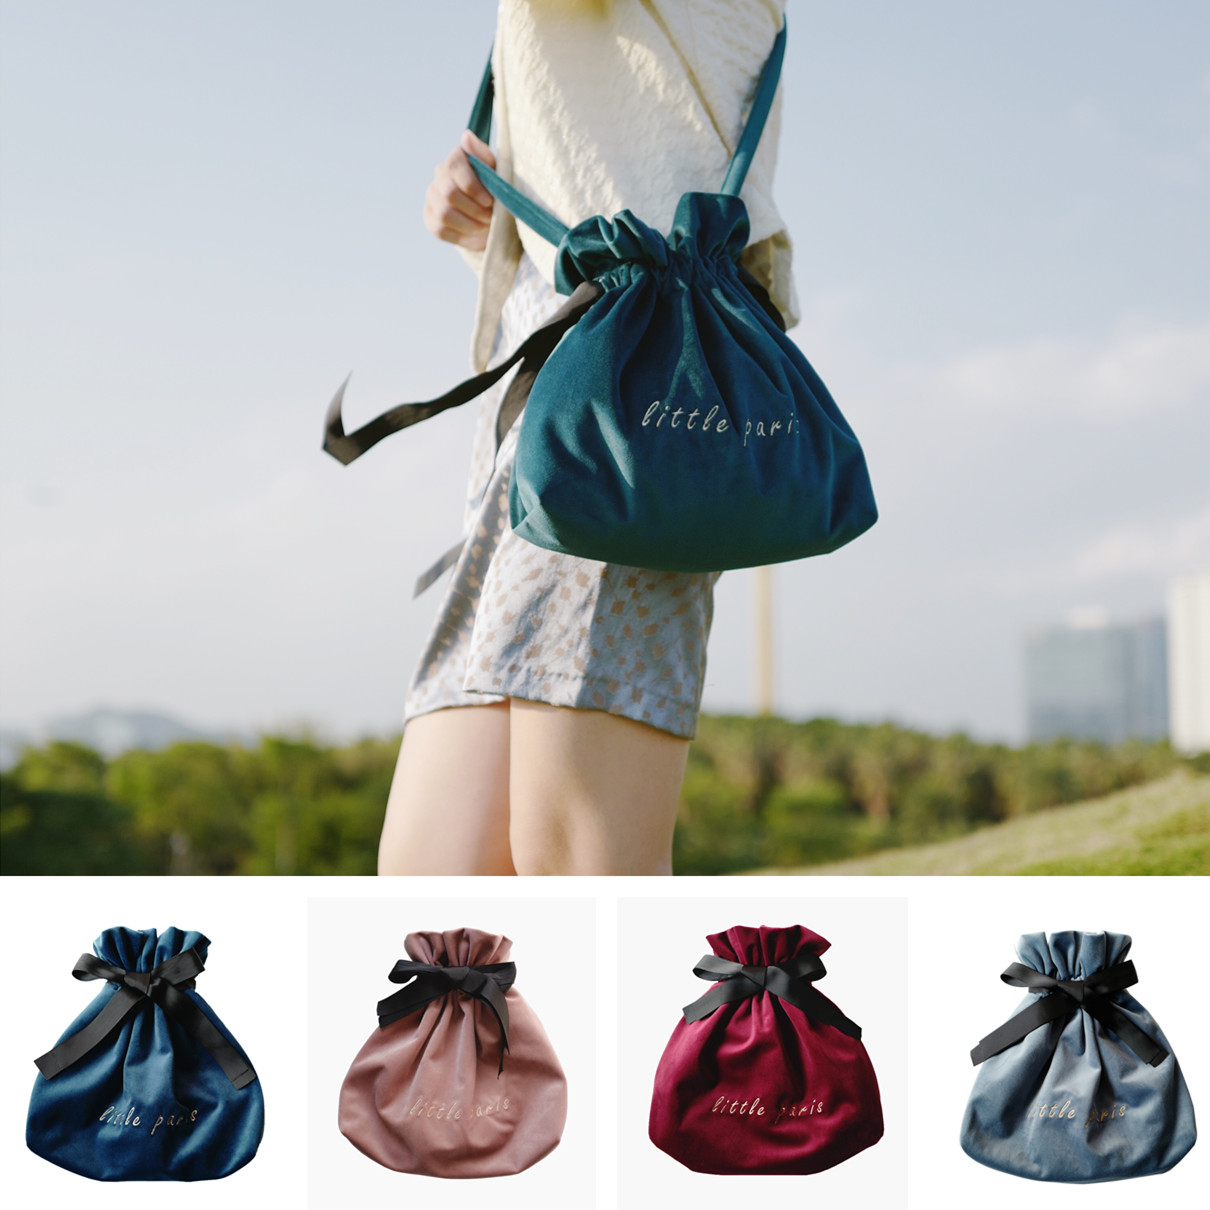 Little Paris Handmade Retro Velvet Embroidered Shoulder Bag Feel Silky Bucket Bag Women's  Drawstring Bag